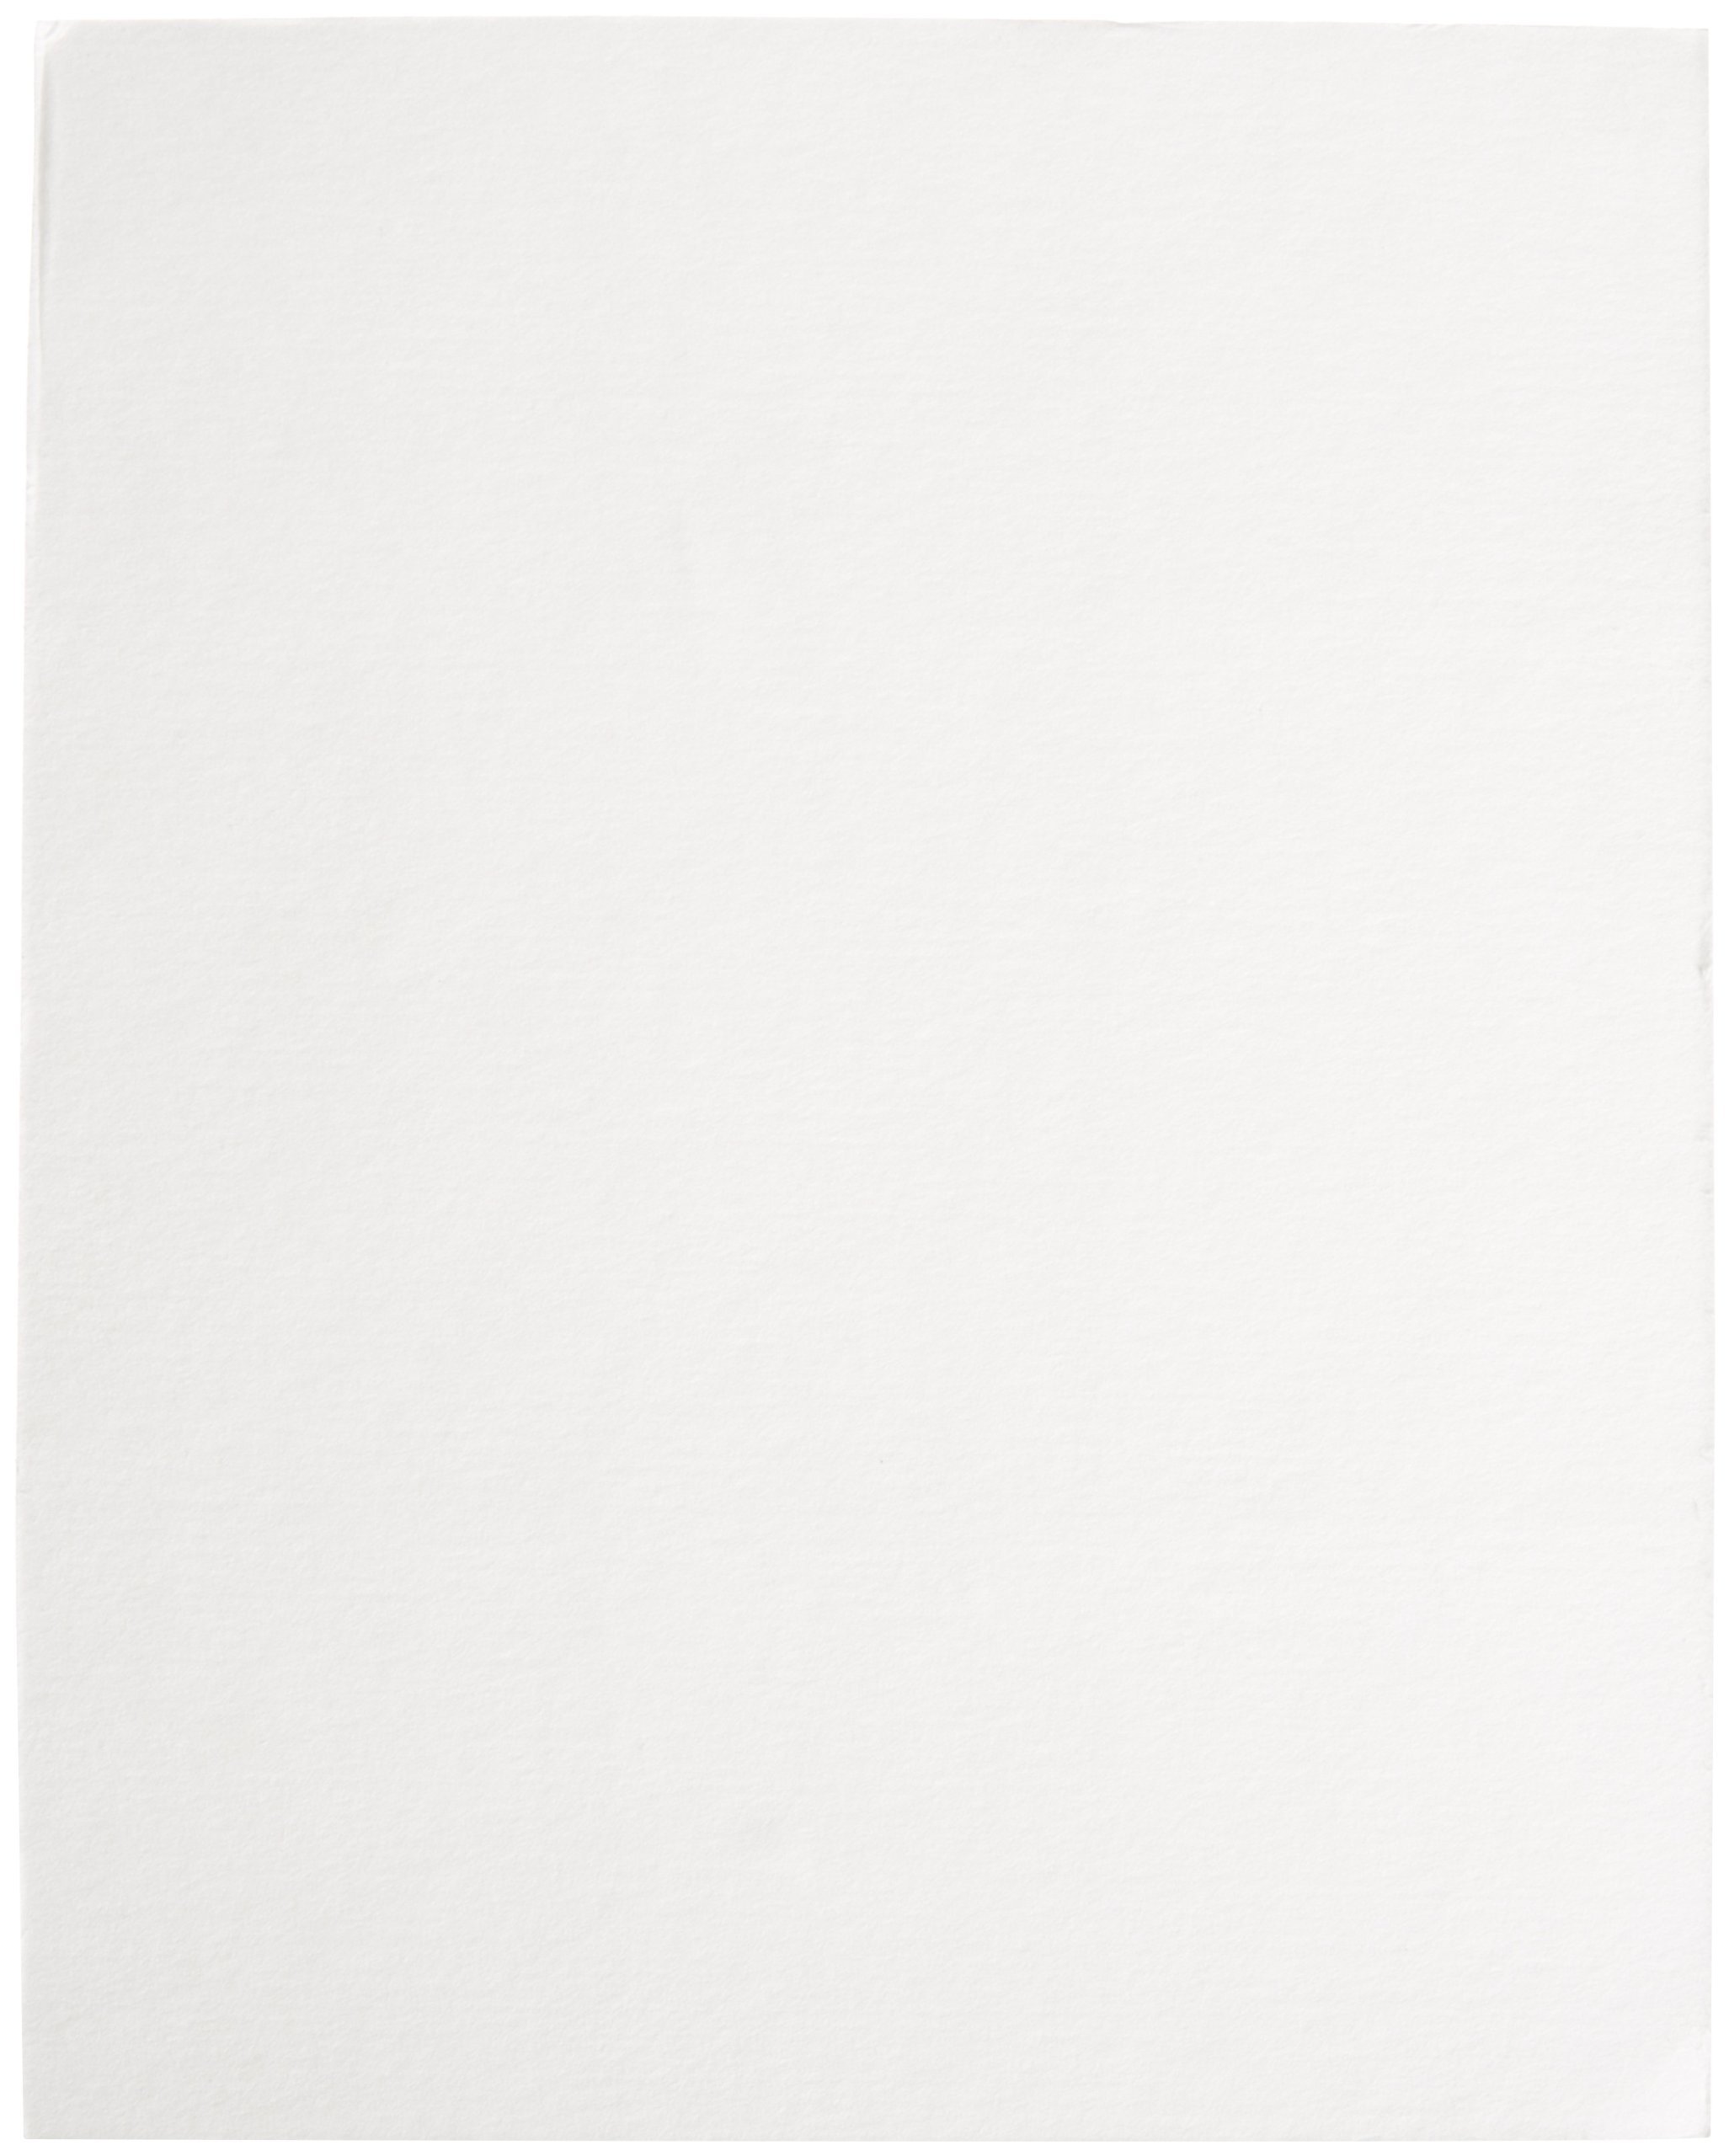 GE Whatman 10547922 Cellulose Standard Blotting Paper, Grade GB003, Sheet, 0.8mm Thickness, 200mm Width x 250mm Length (Pack of 100) by Whatman